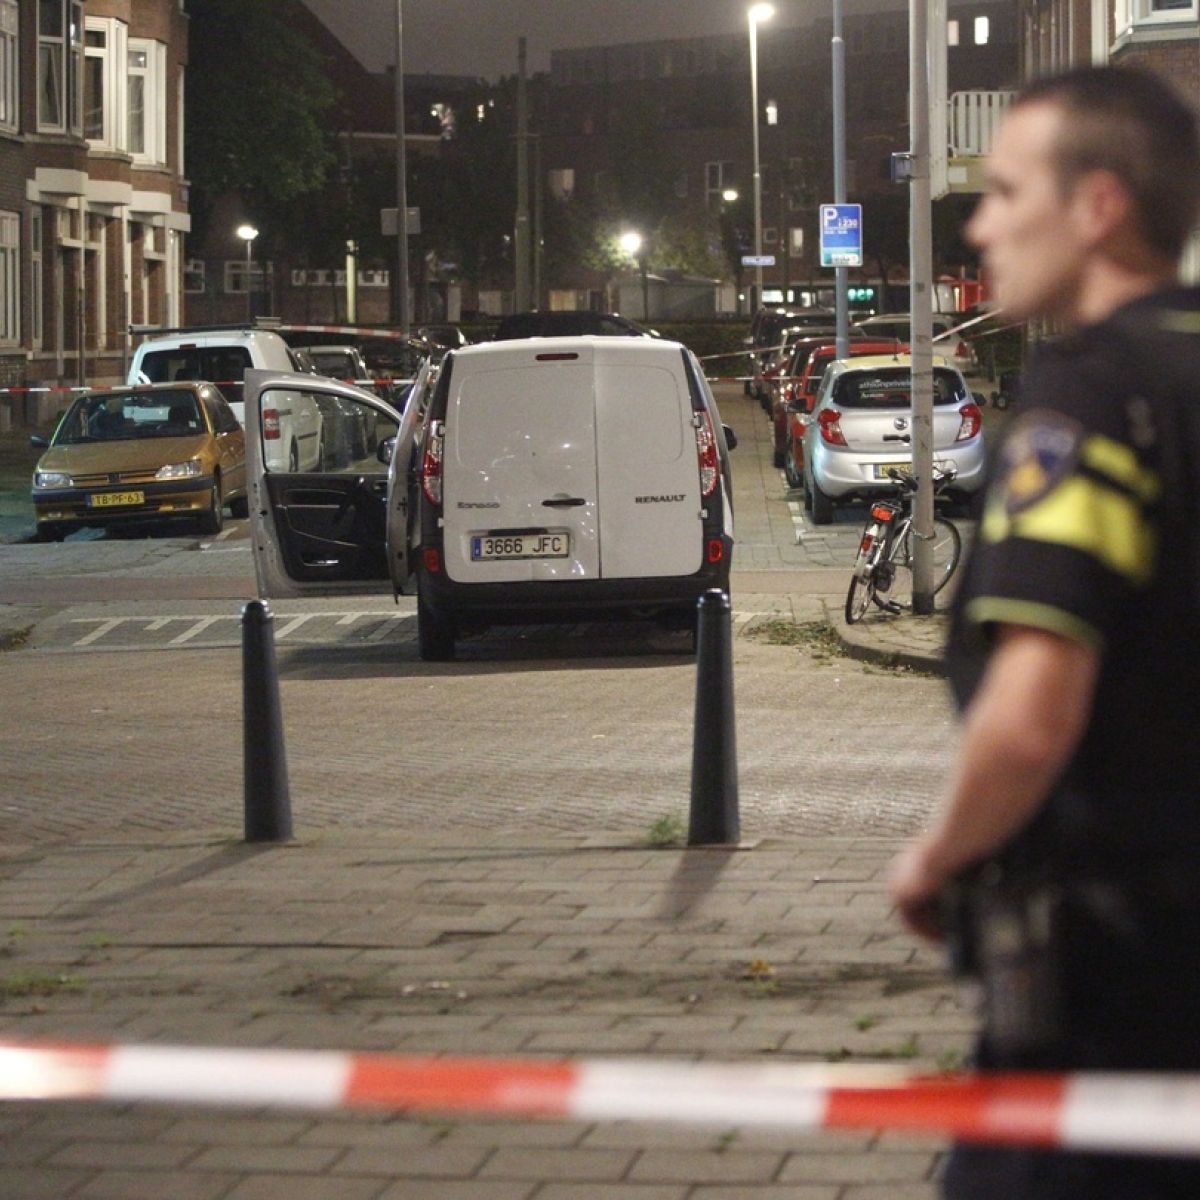 Concert in Rotterdam cancelled after tip from Spanish police